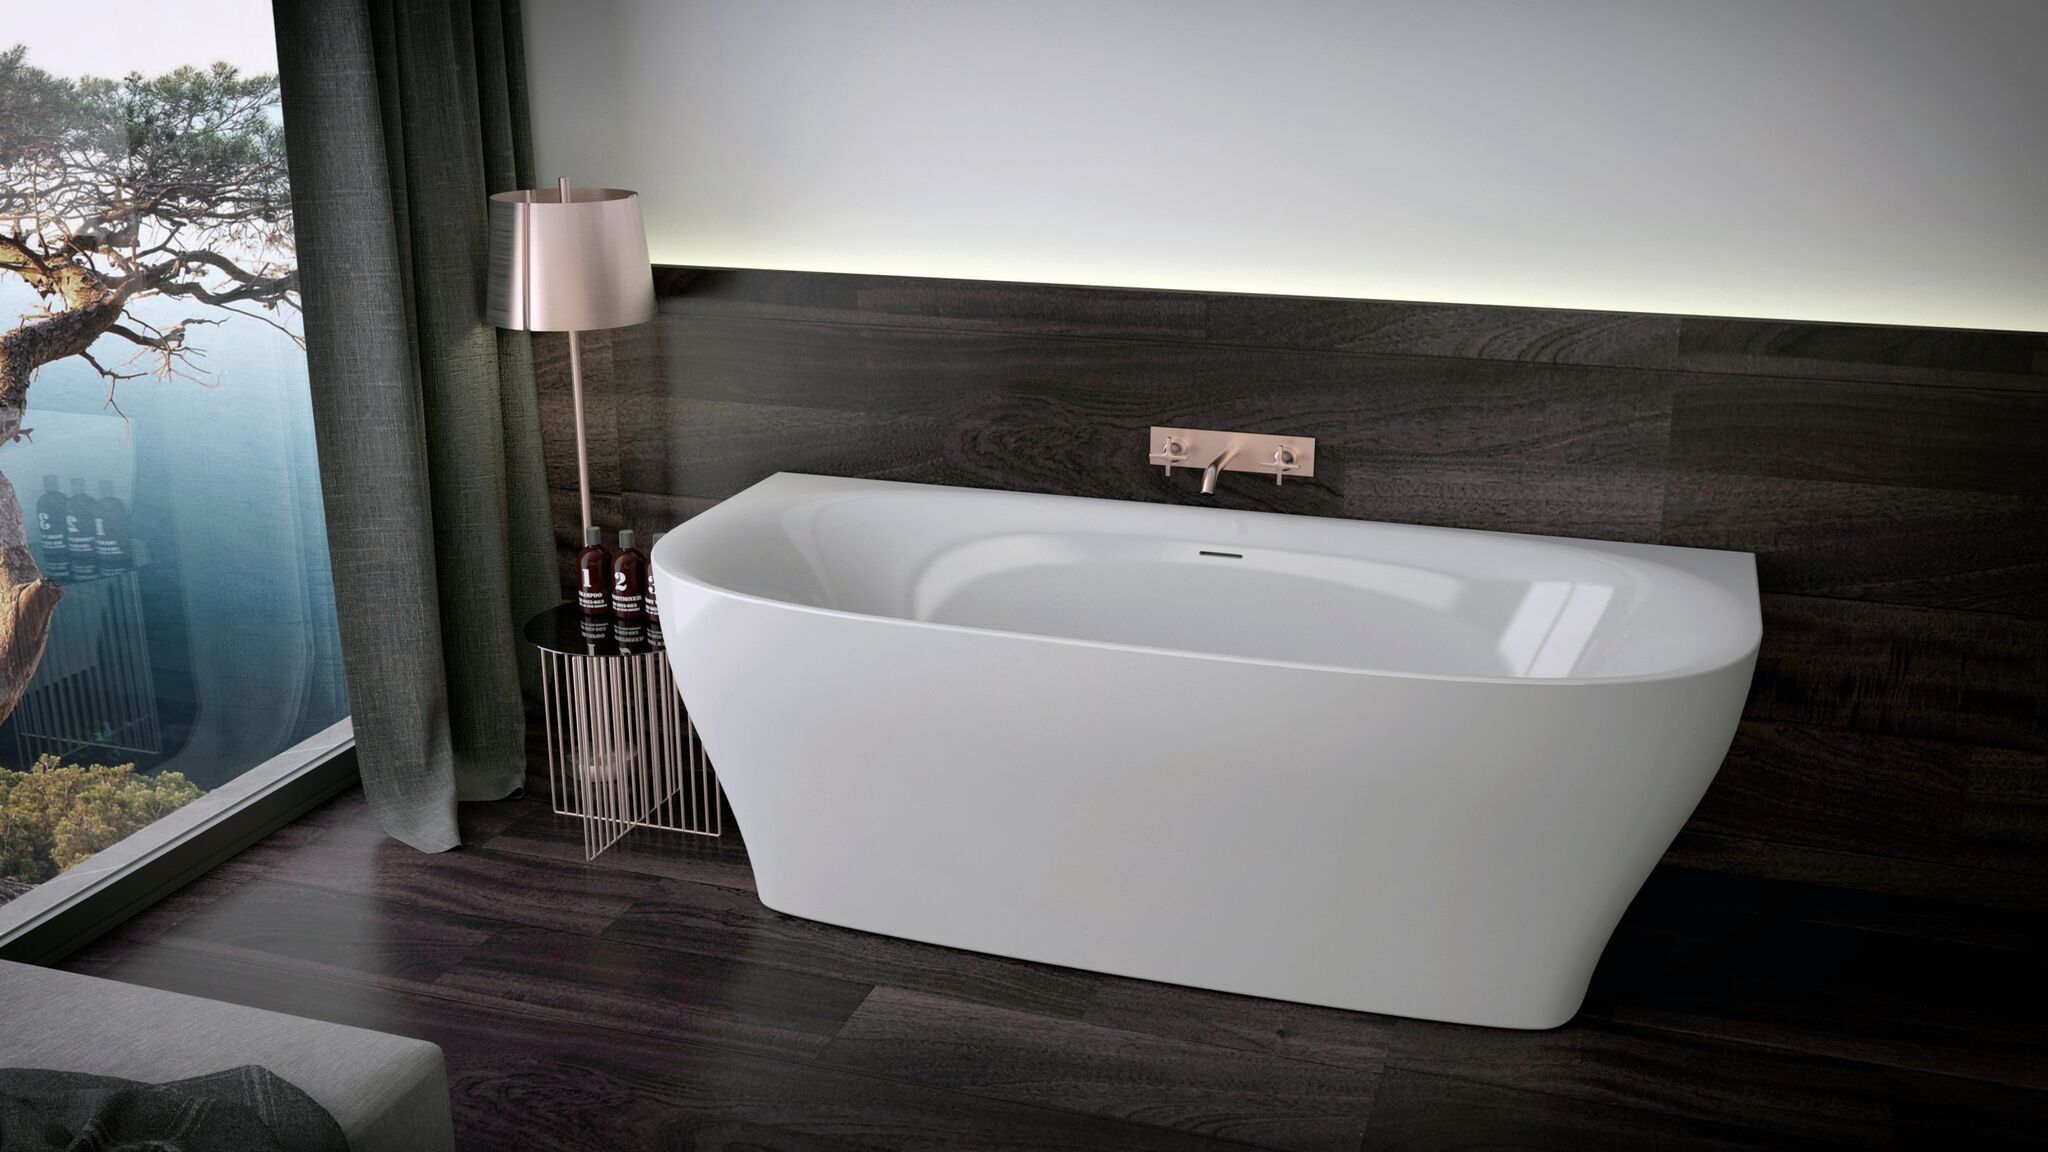 Latest news acrylic bathtubs kniefco for Knief tubs